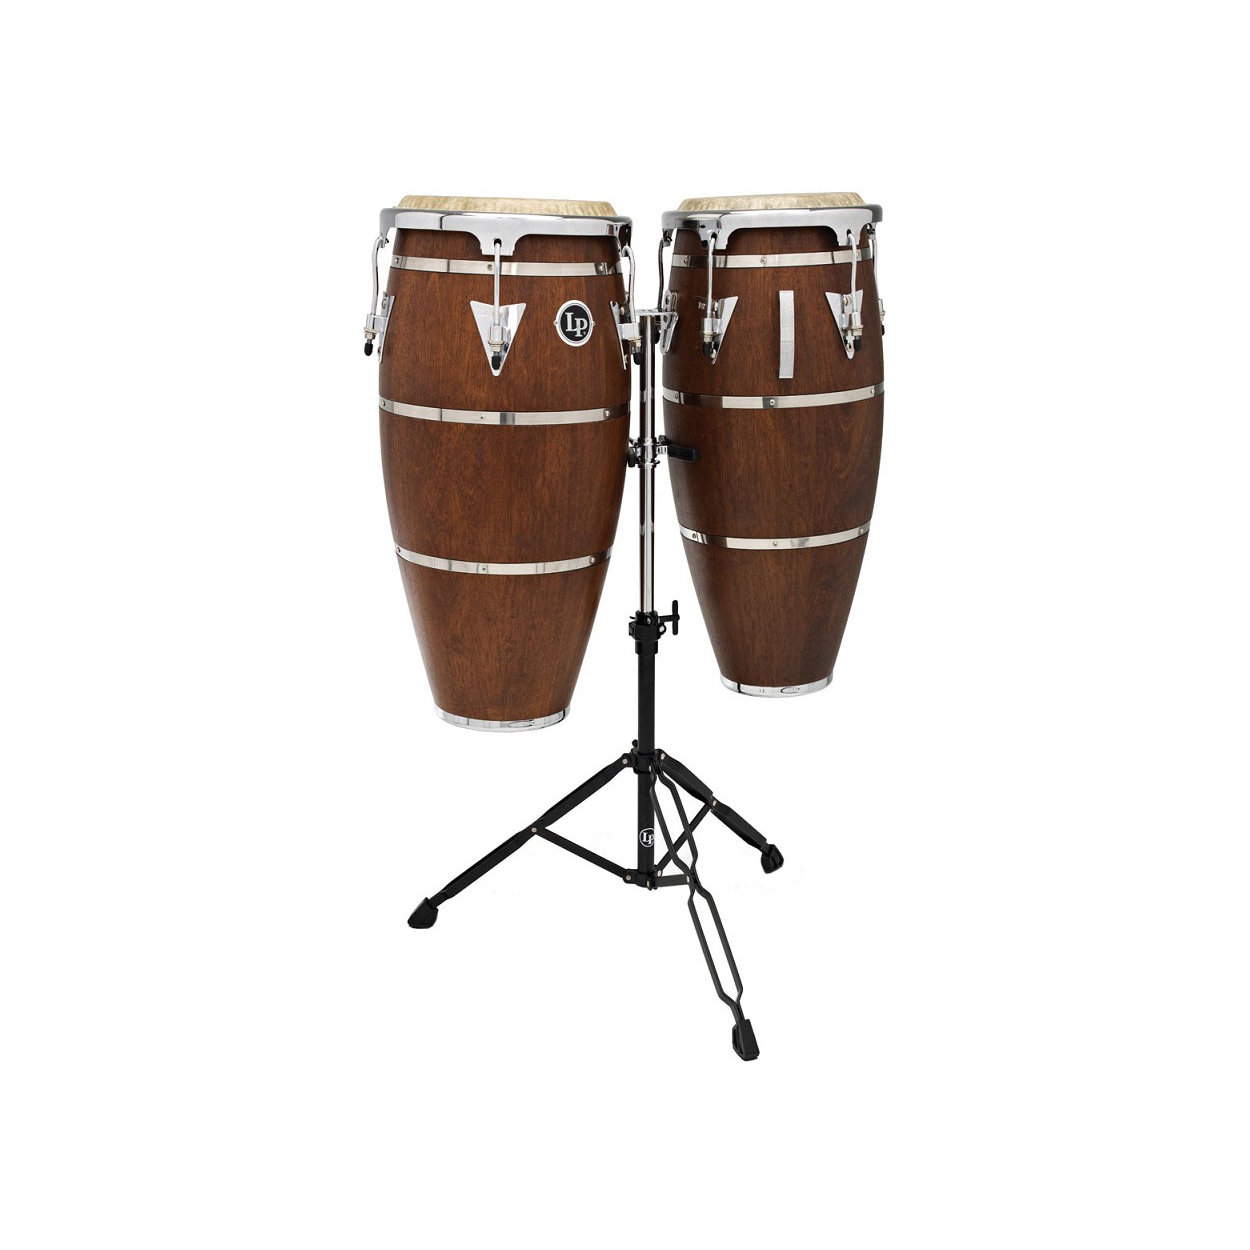 Latin Percussion LPH646 SMC Highline Conga Set, Satin Mahogany